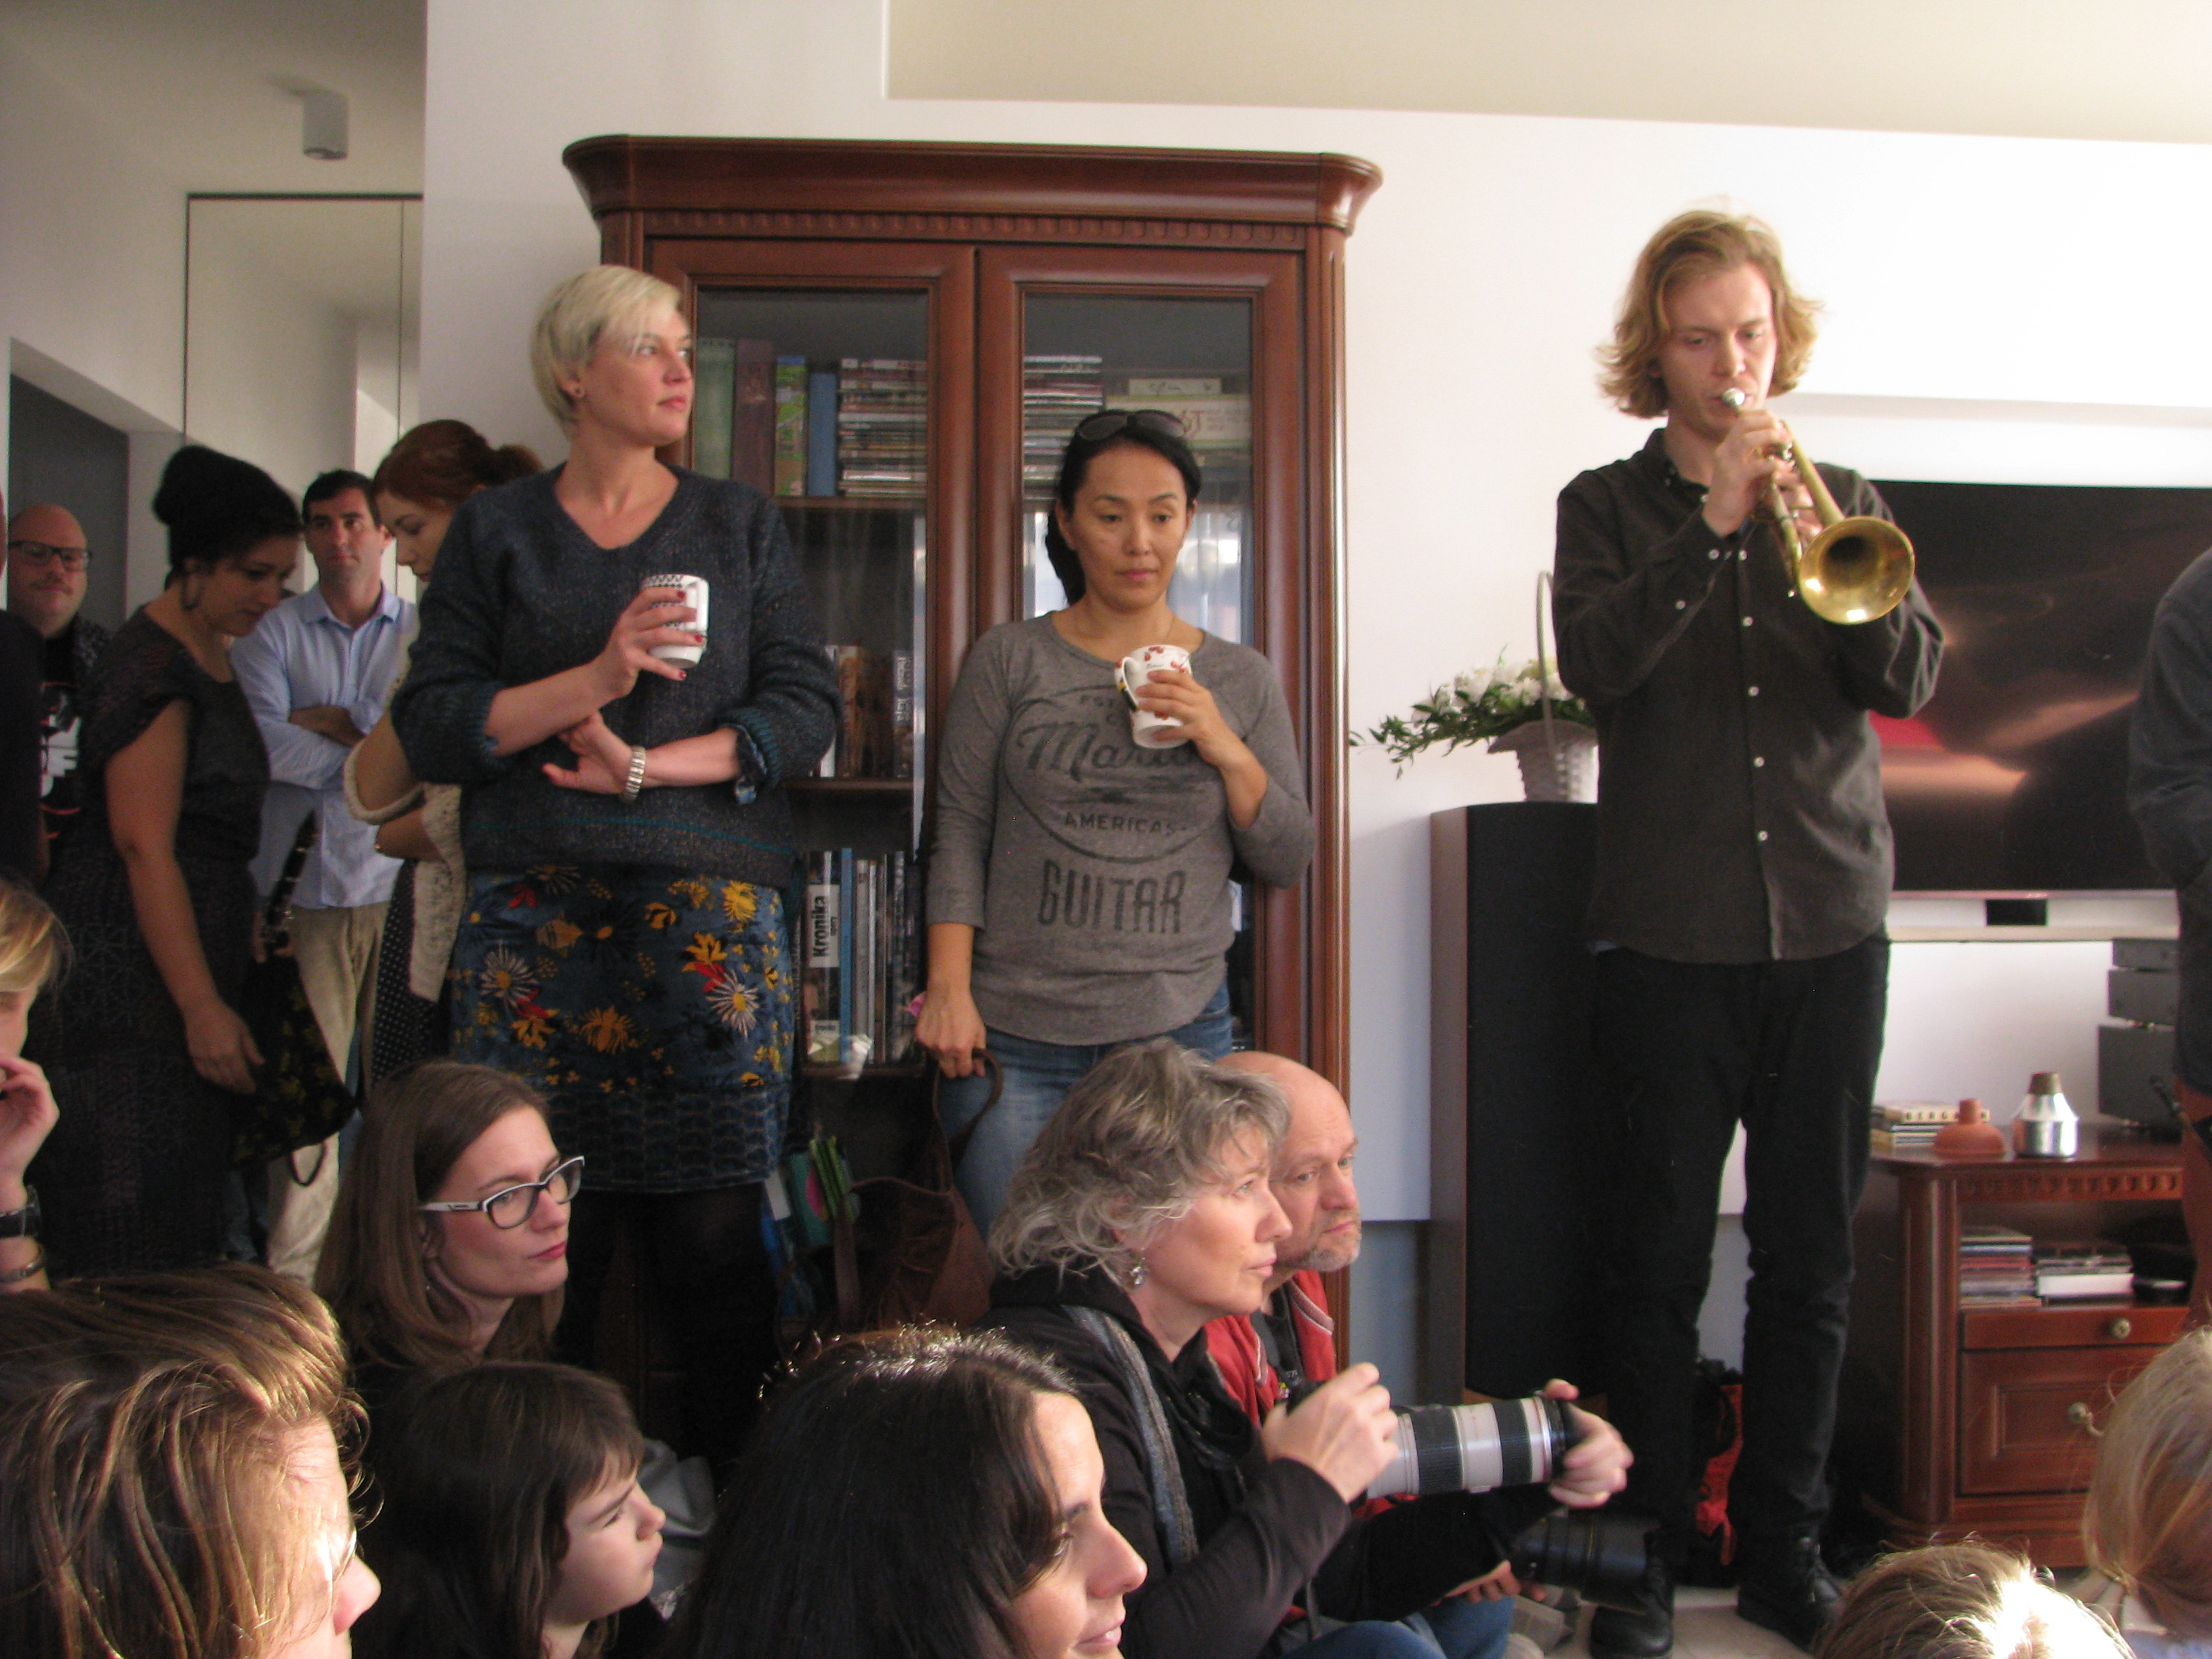 Living room concerts Jazztopad 2018 Wroclaw